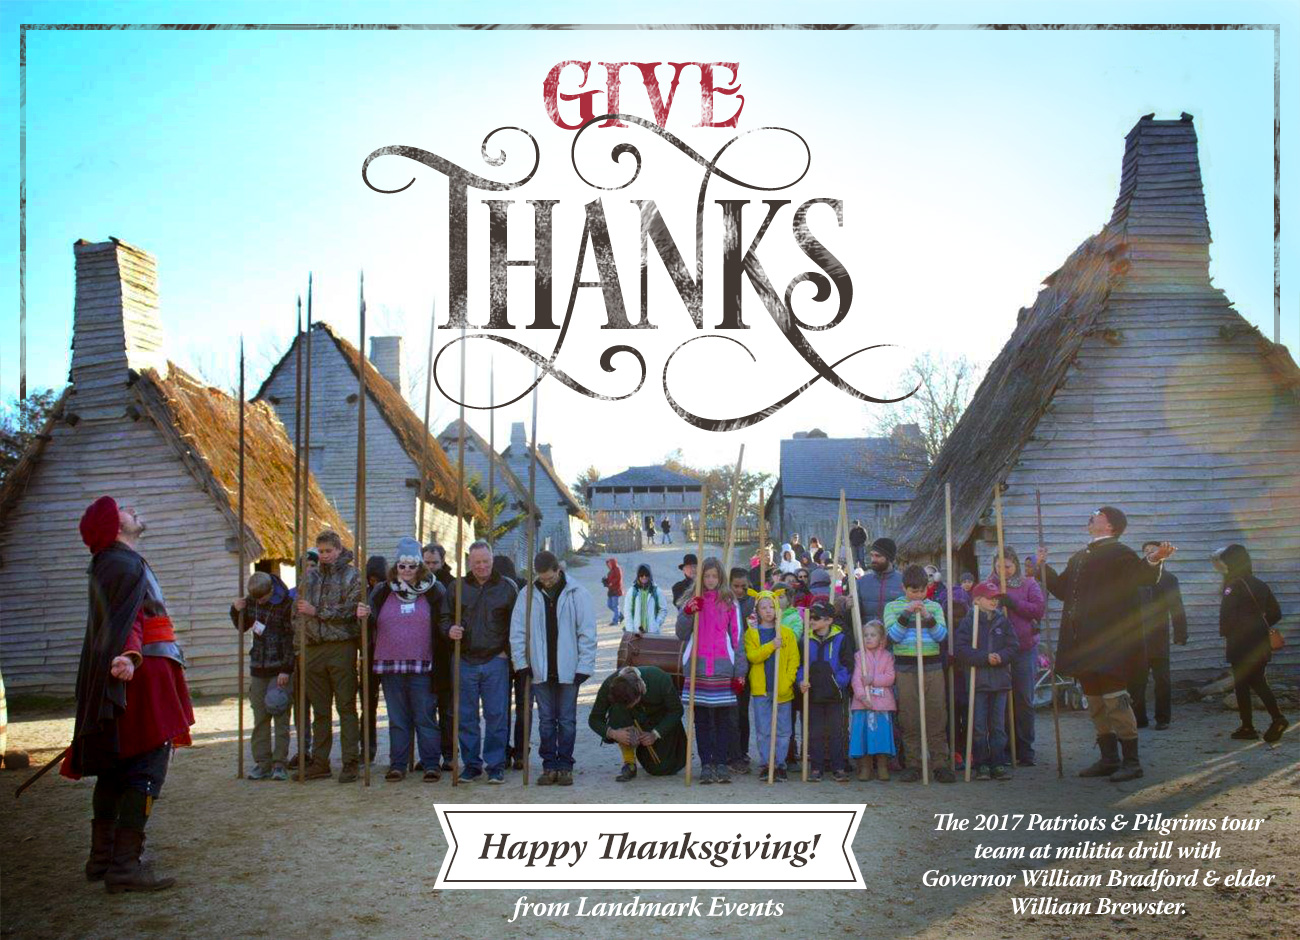 Give Thanks — Happy Thanksgiving from Landmark Events!